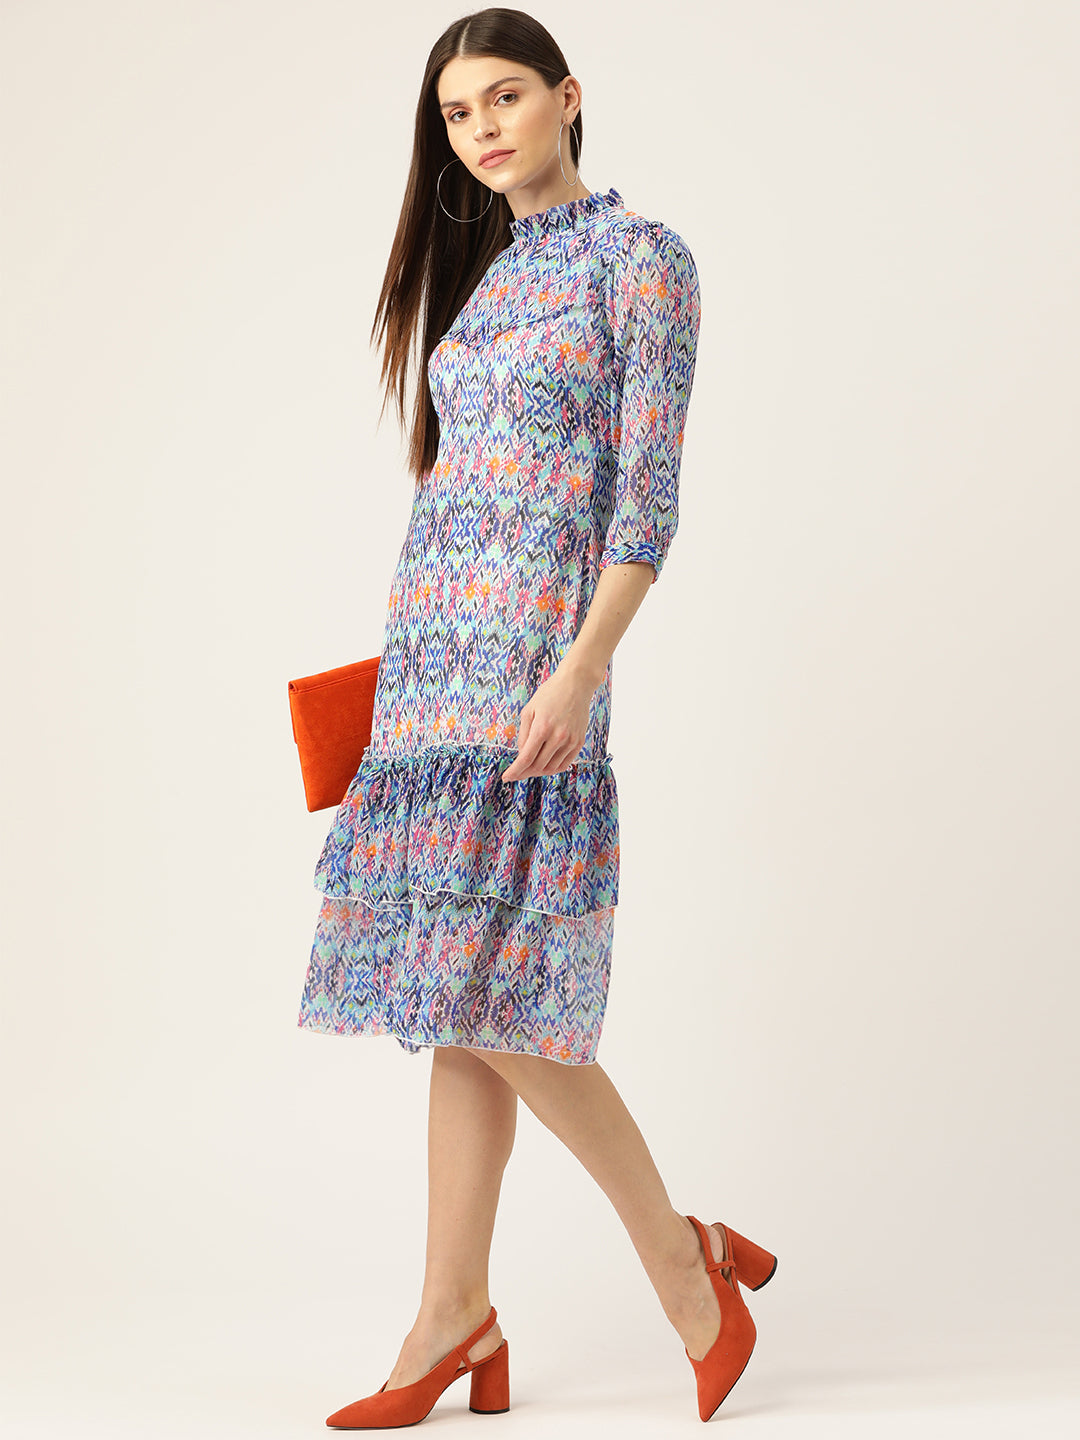 Multicolored Printed layered A-line dress